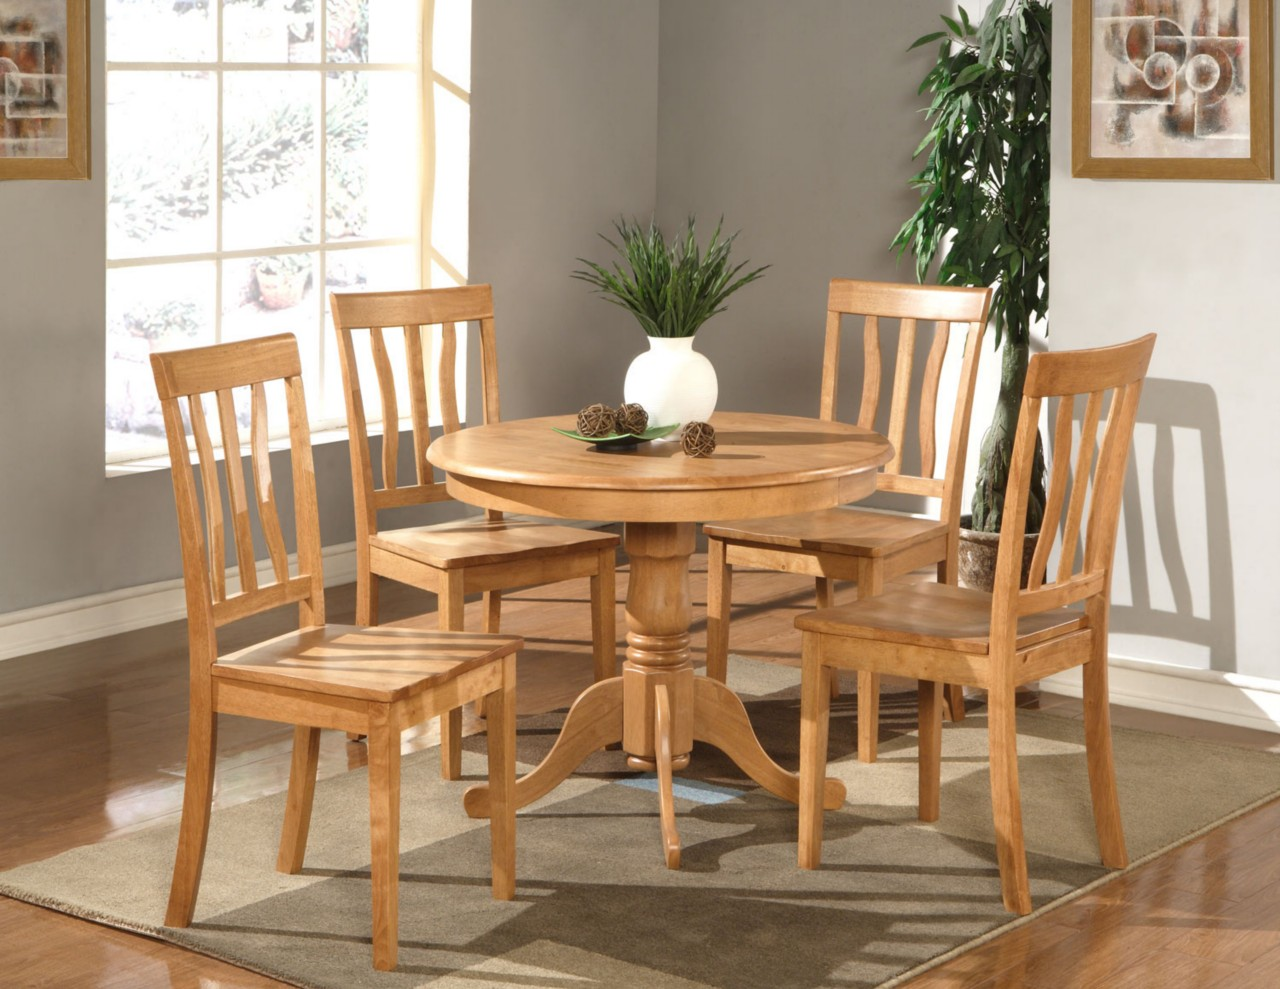 5 Pc Dinette Kitchen Round Table With 4 Wood Seat Chairs